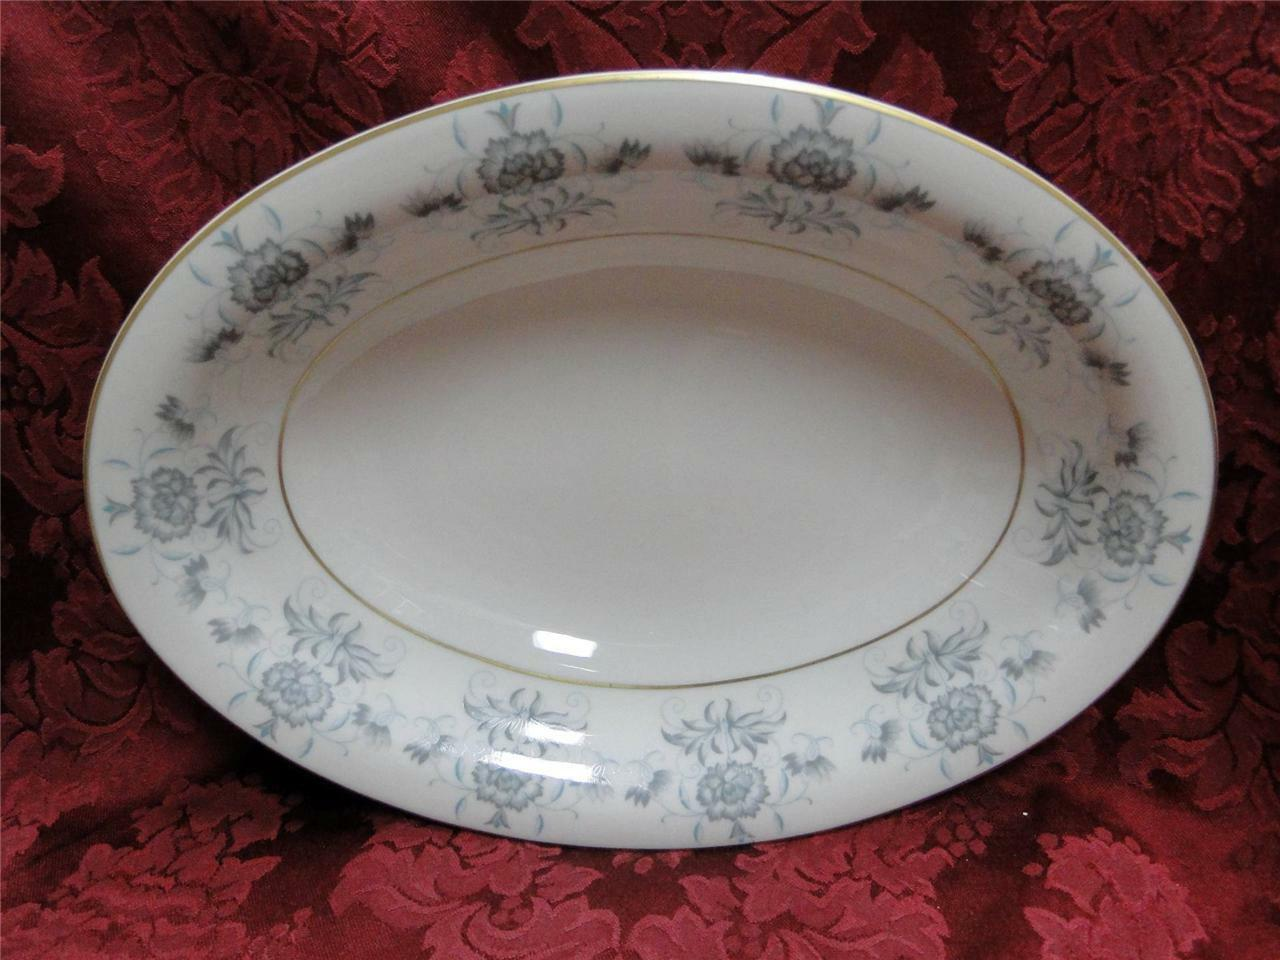 Castleton Caprice, blue flowers, gold trim: Oval Vegetable Serving Bowl (s)